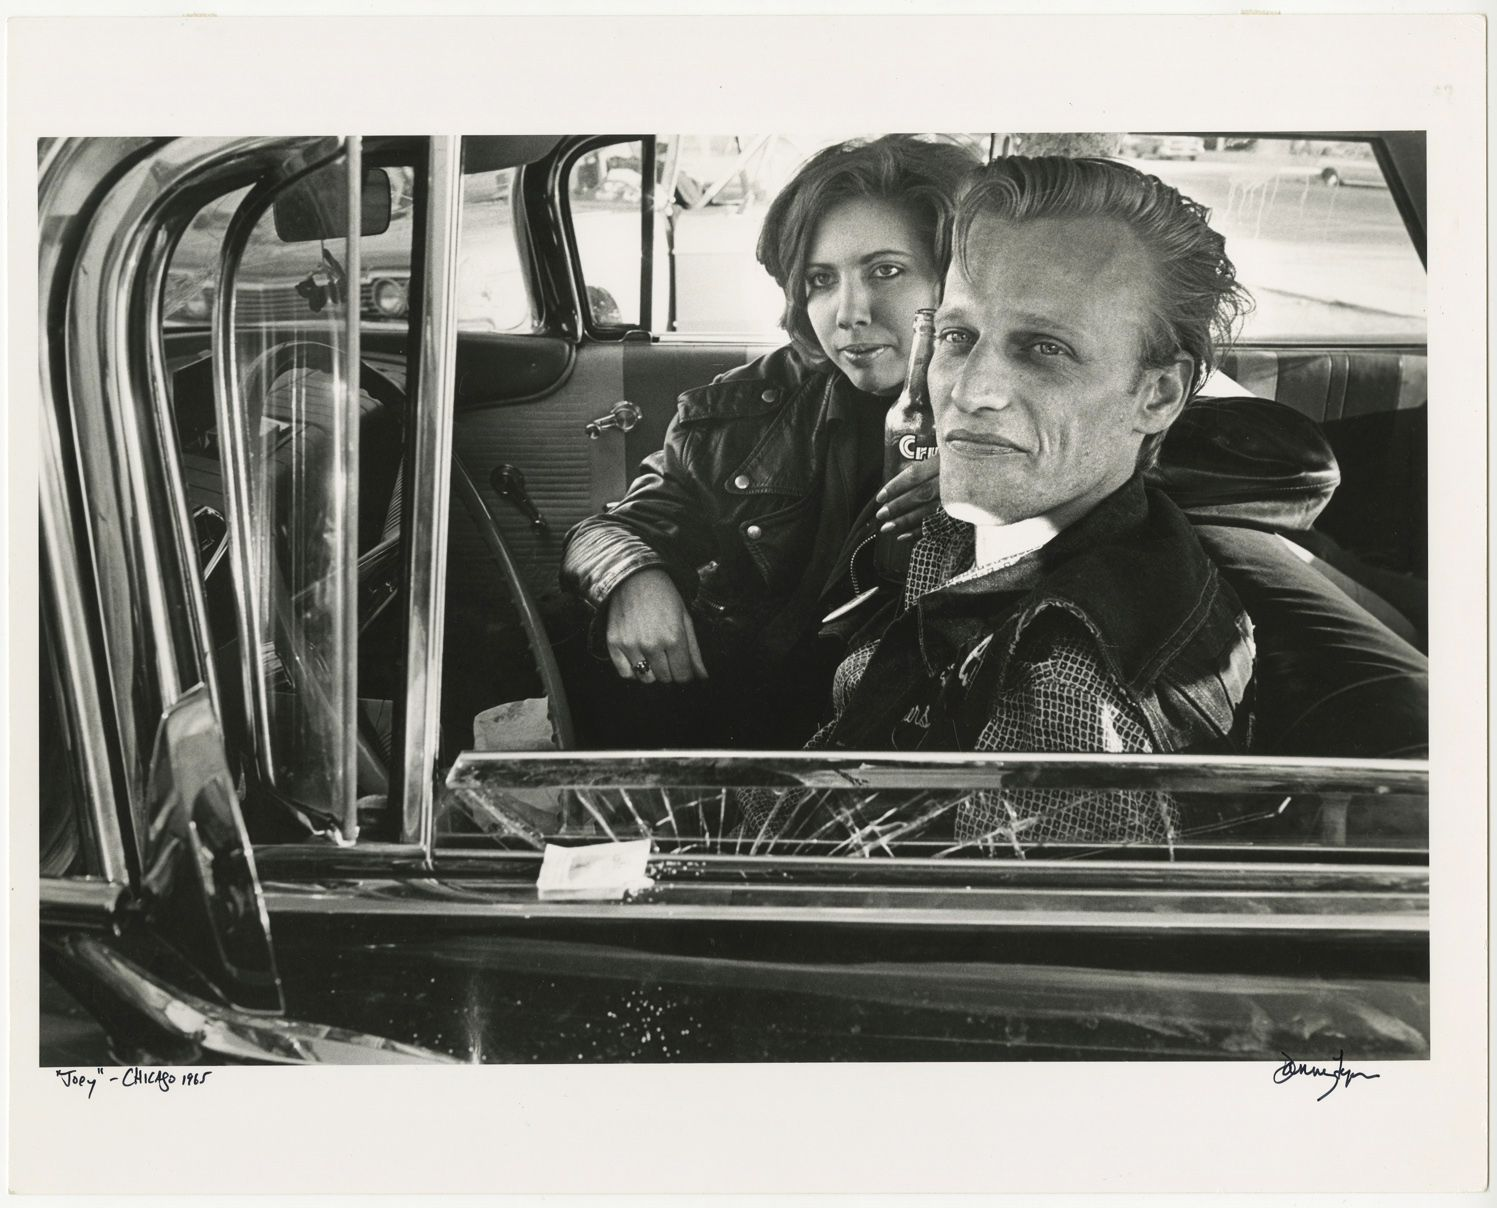 Copyright Danny Lyon / Magnum Photos, Joey, Chicago, from The Bikeriders, 1965